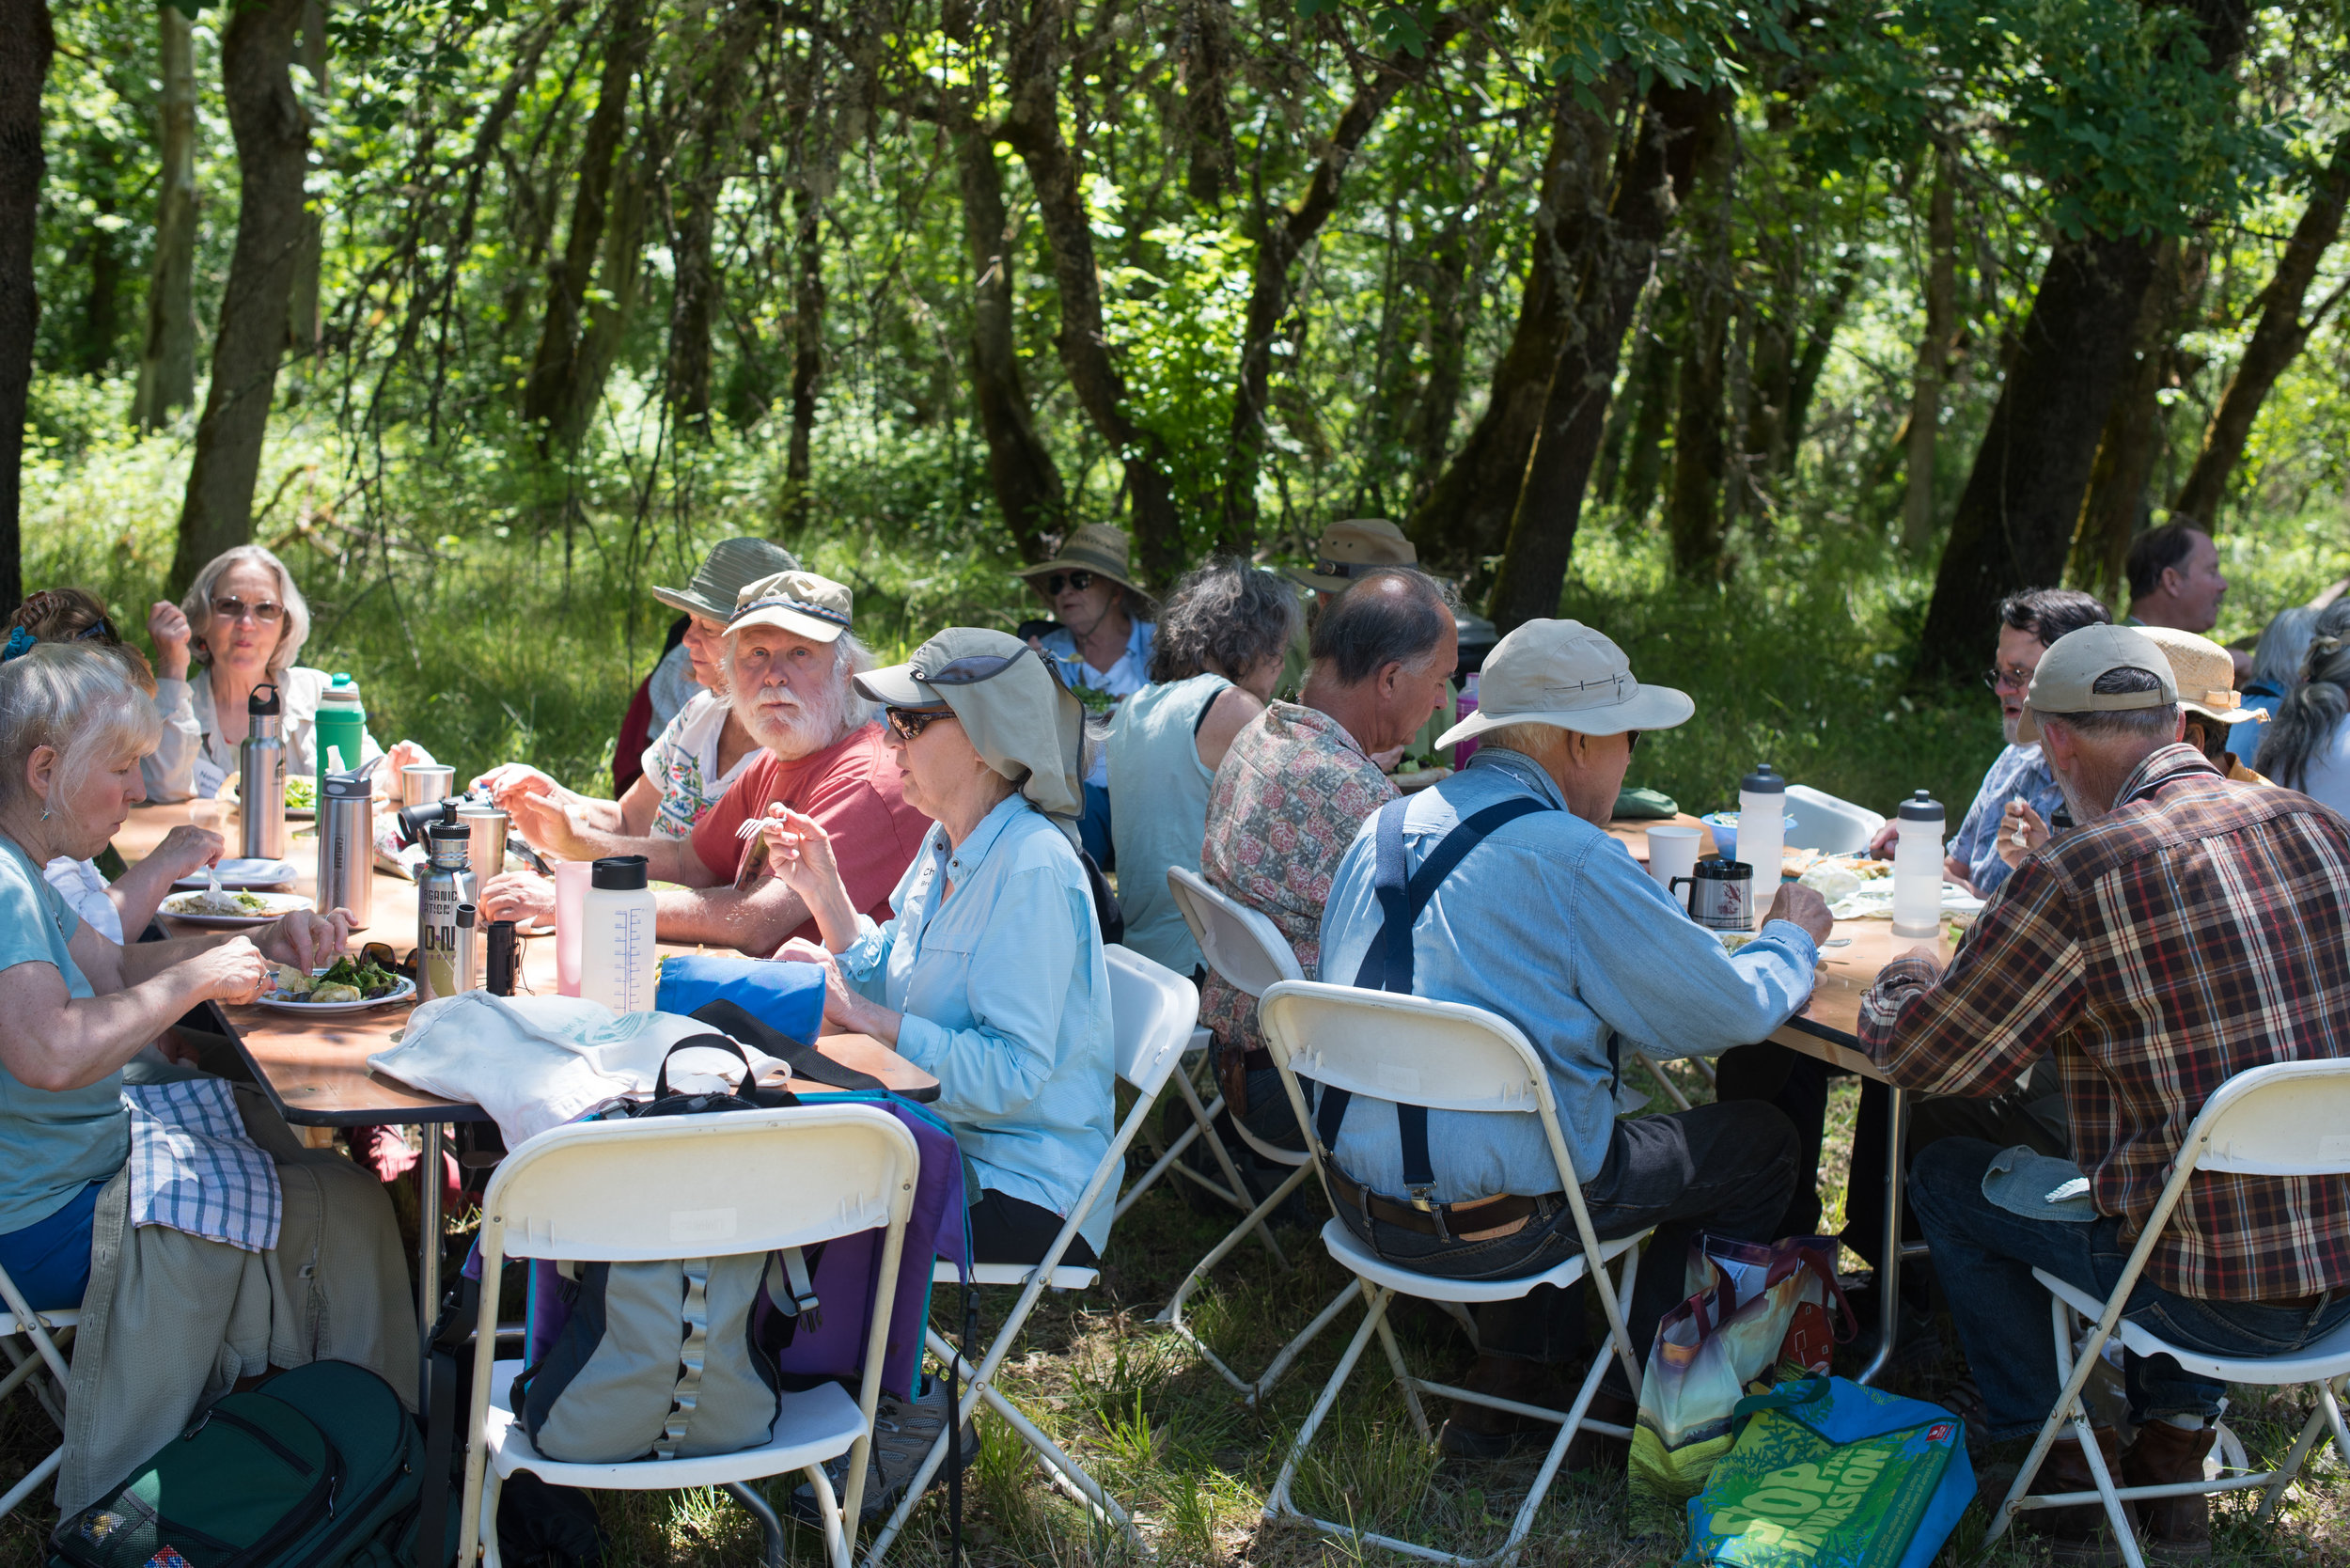 2018AnnualPicnic_Professinal (171)_ForWeb-CathyAdds.jpg